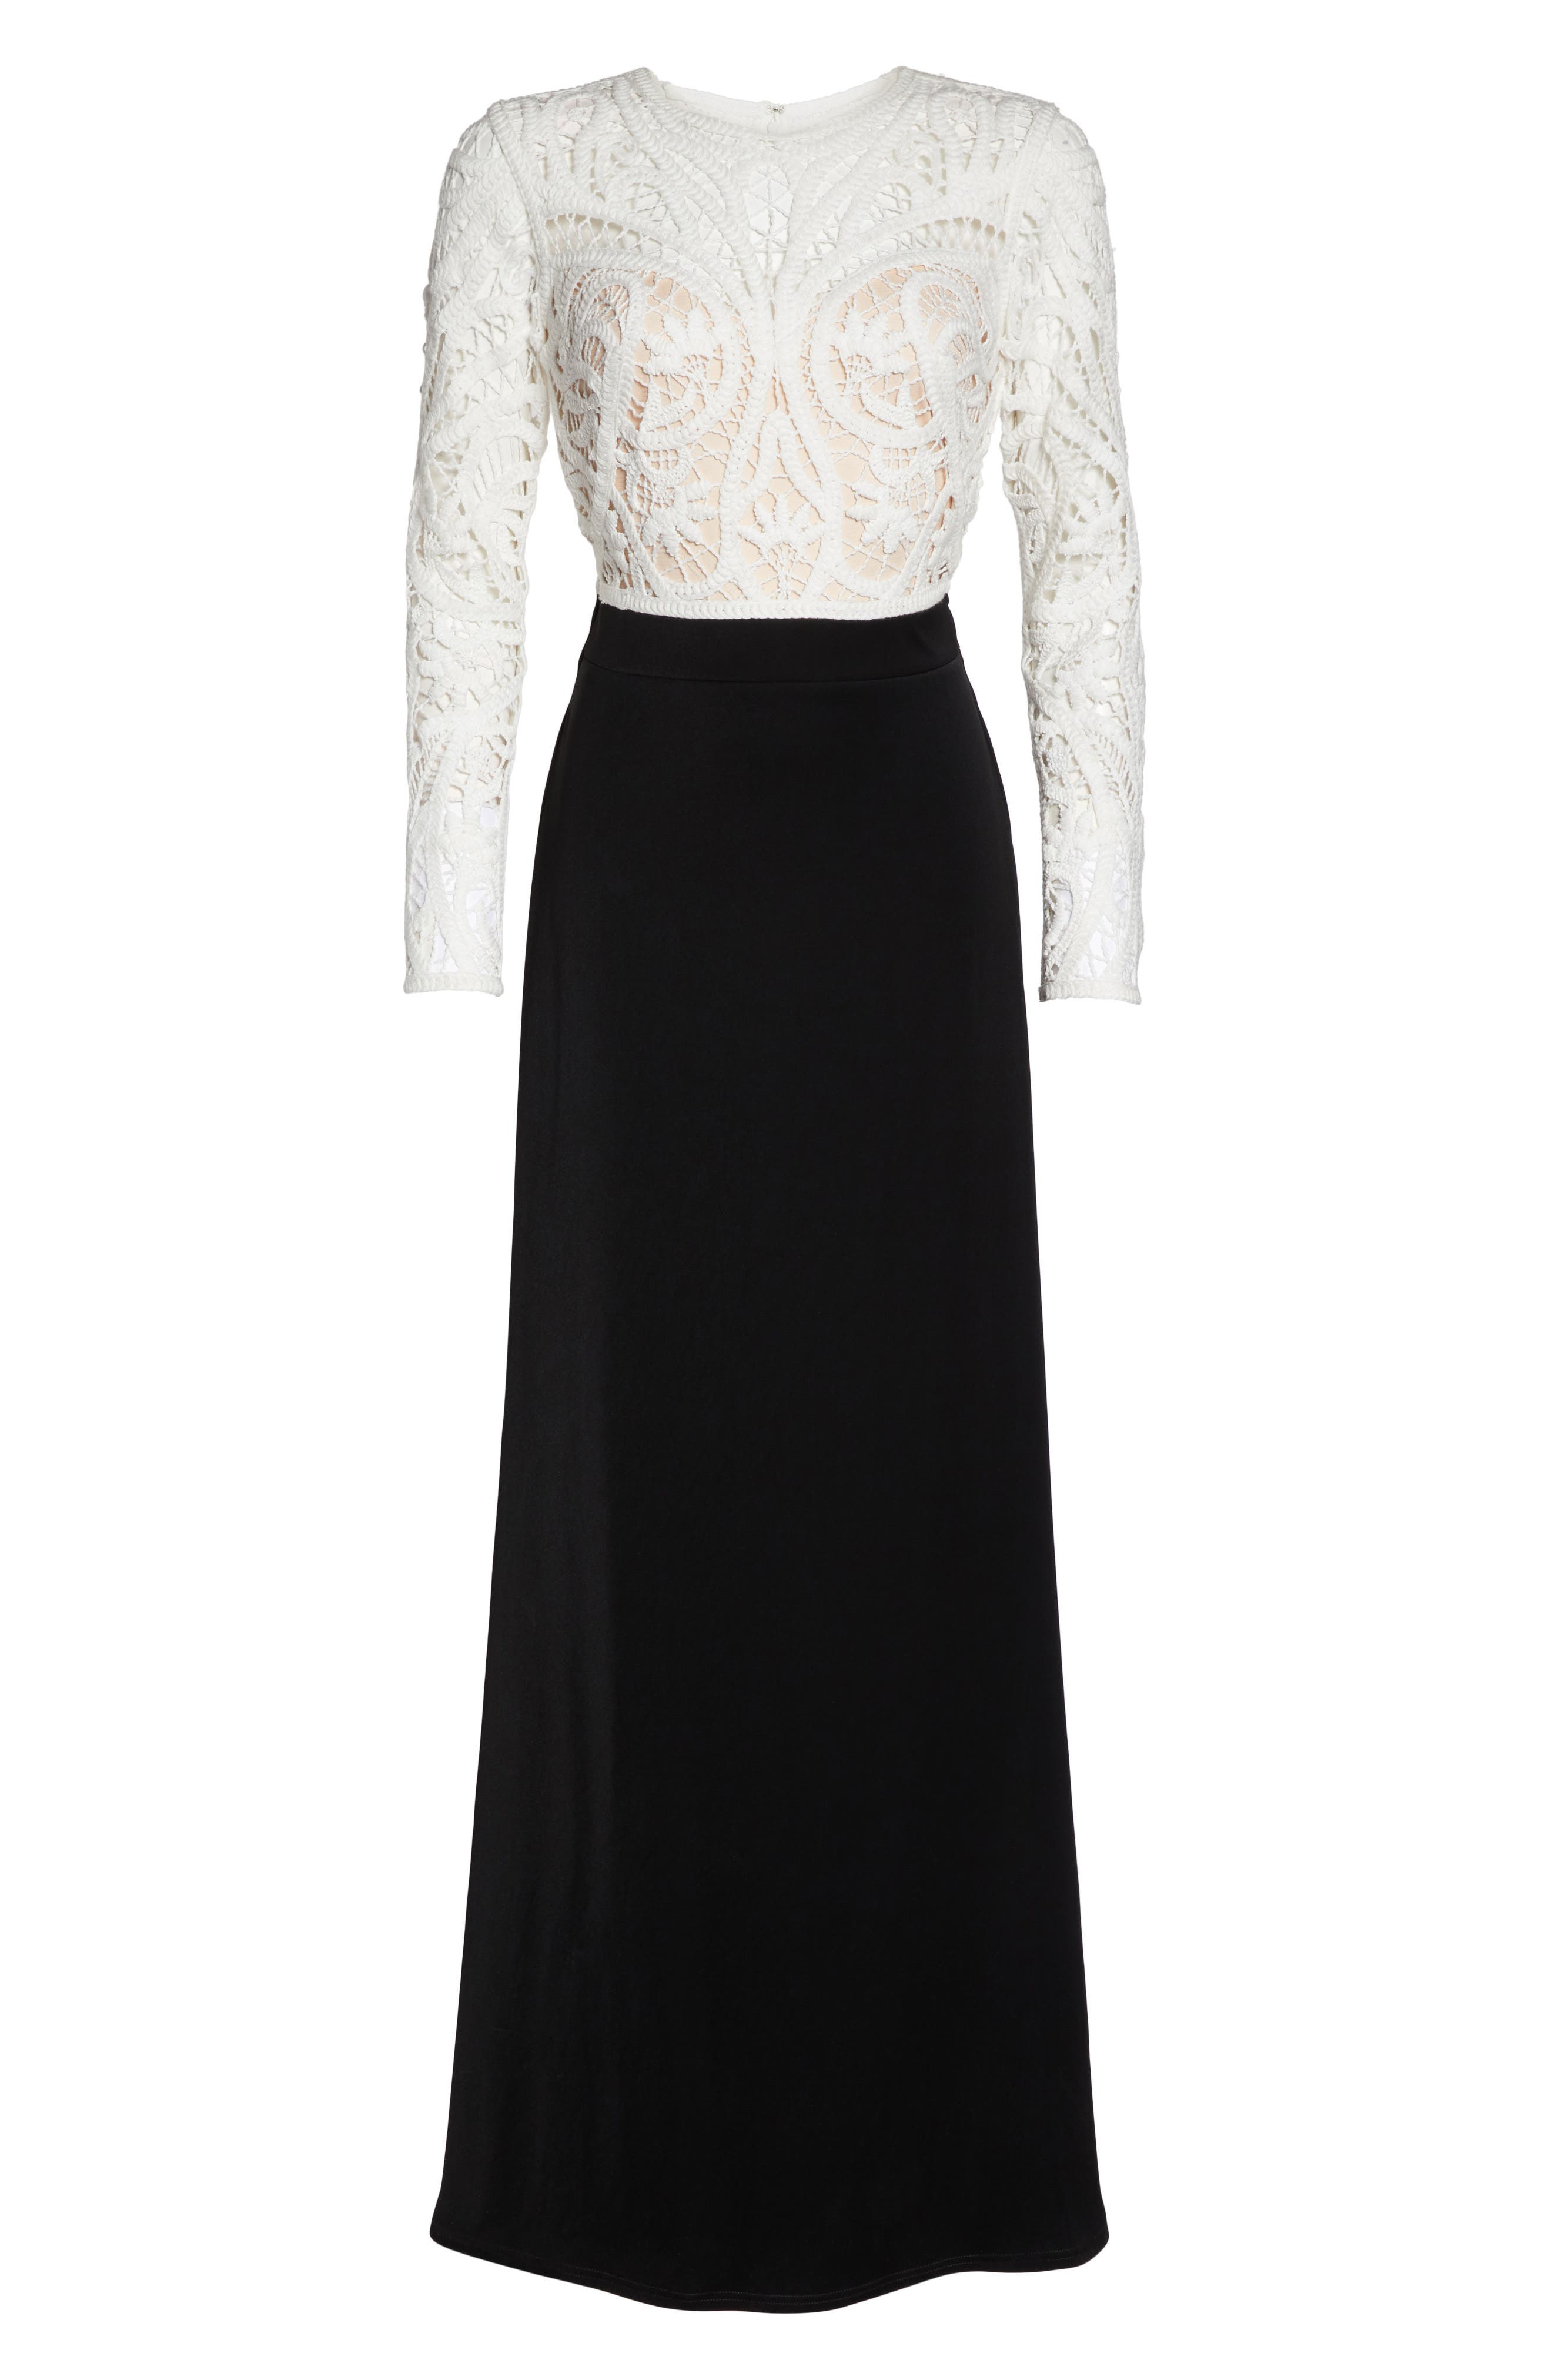 Crochet Lace & Crepe Gown,                             Alternate thumbnail 6, color,                             IVORY/ BLACK